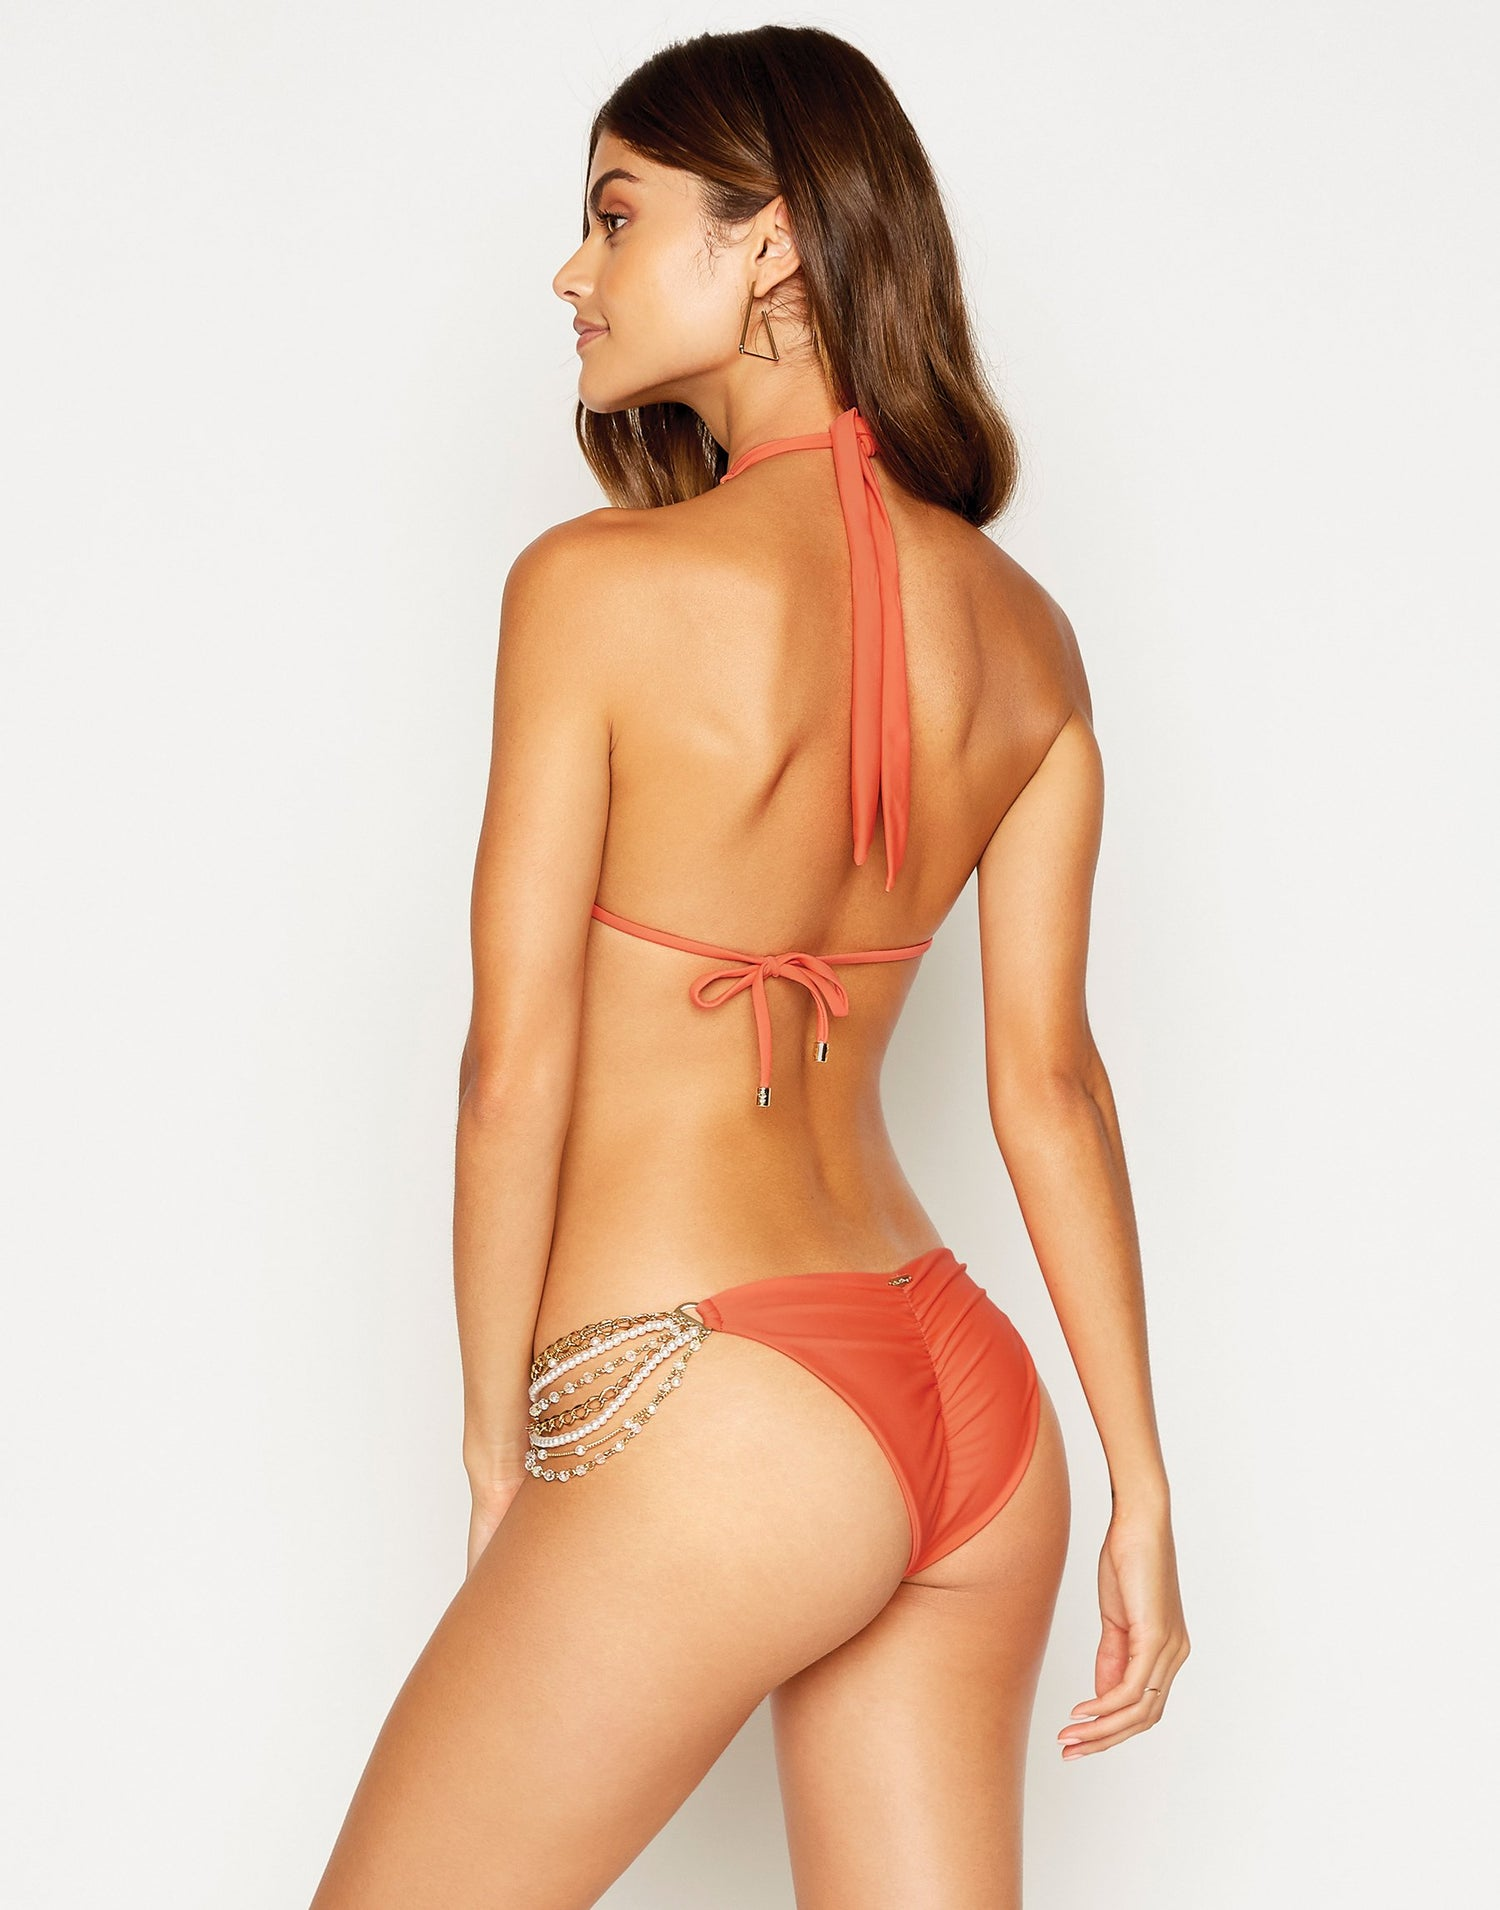 Pretty in Pearls Skimpy Bikini Bottom in Poppy Red with Pearl Hardware - back view